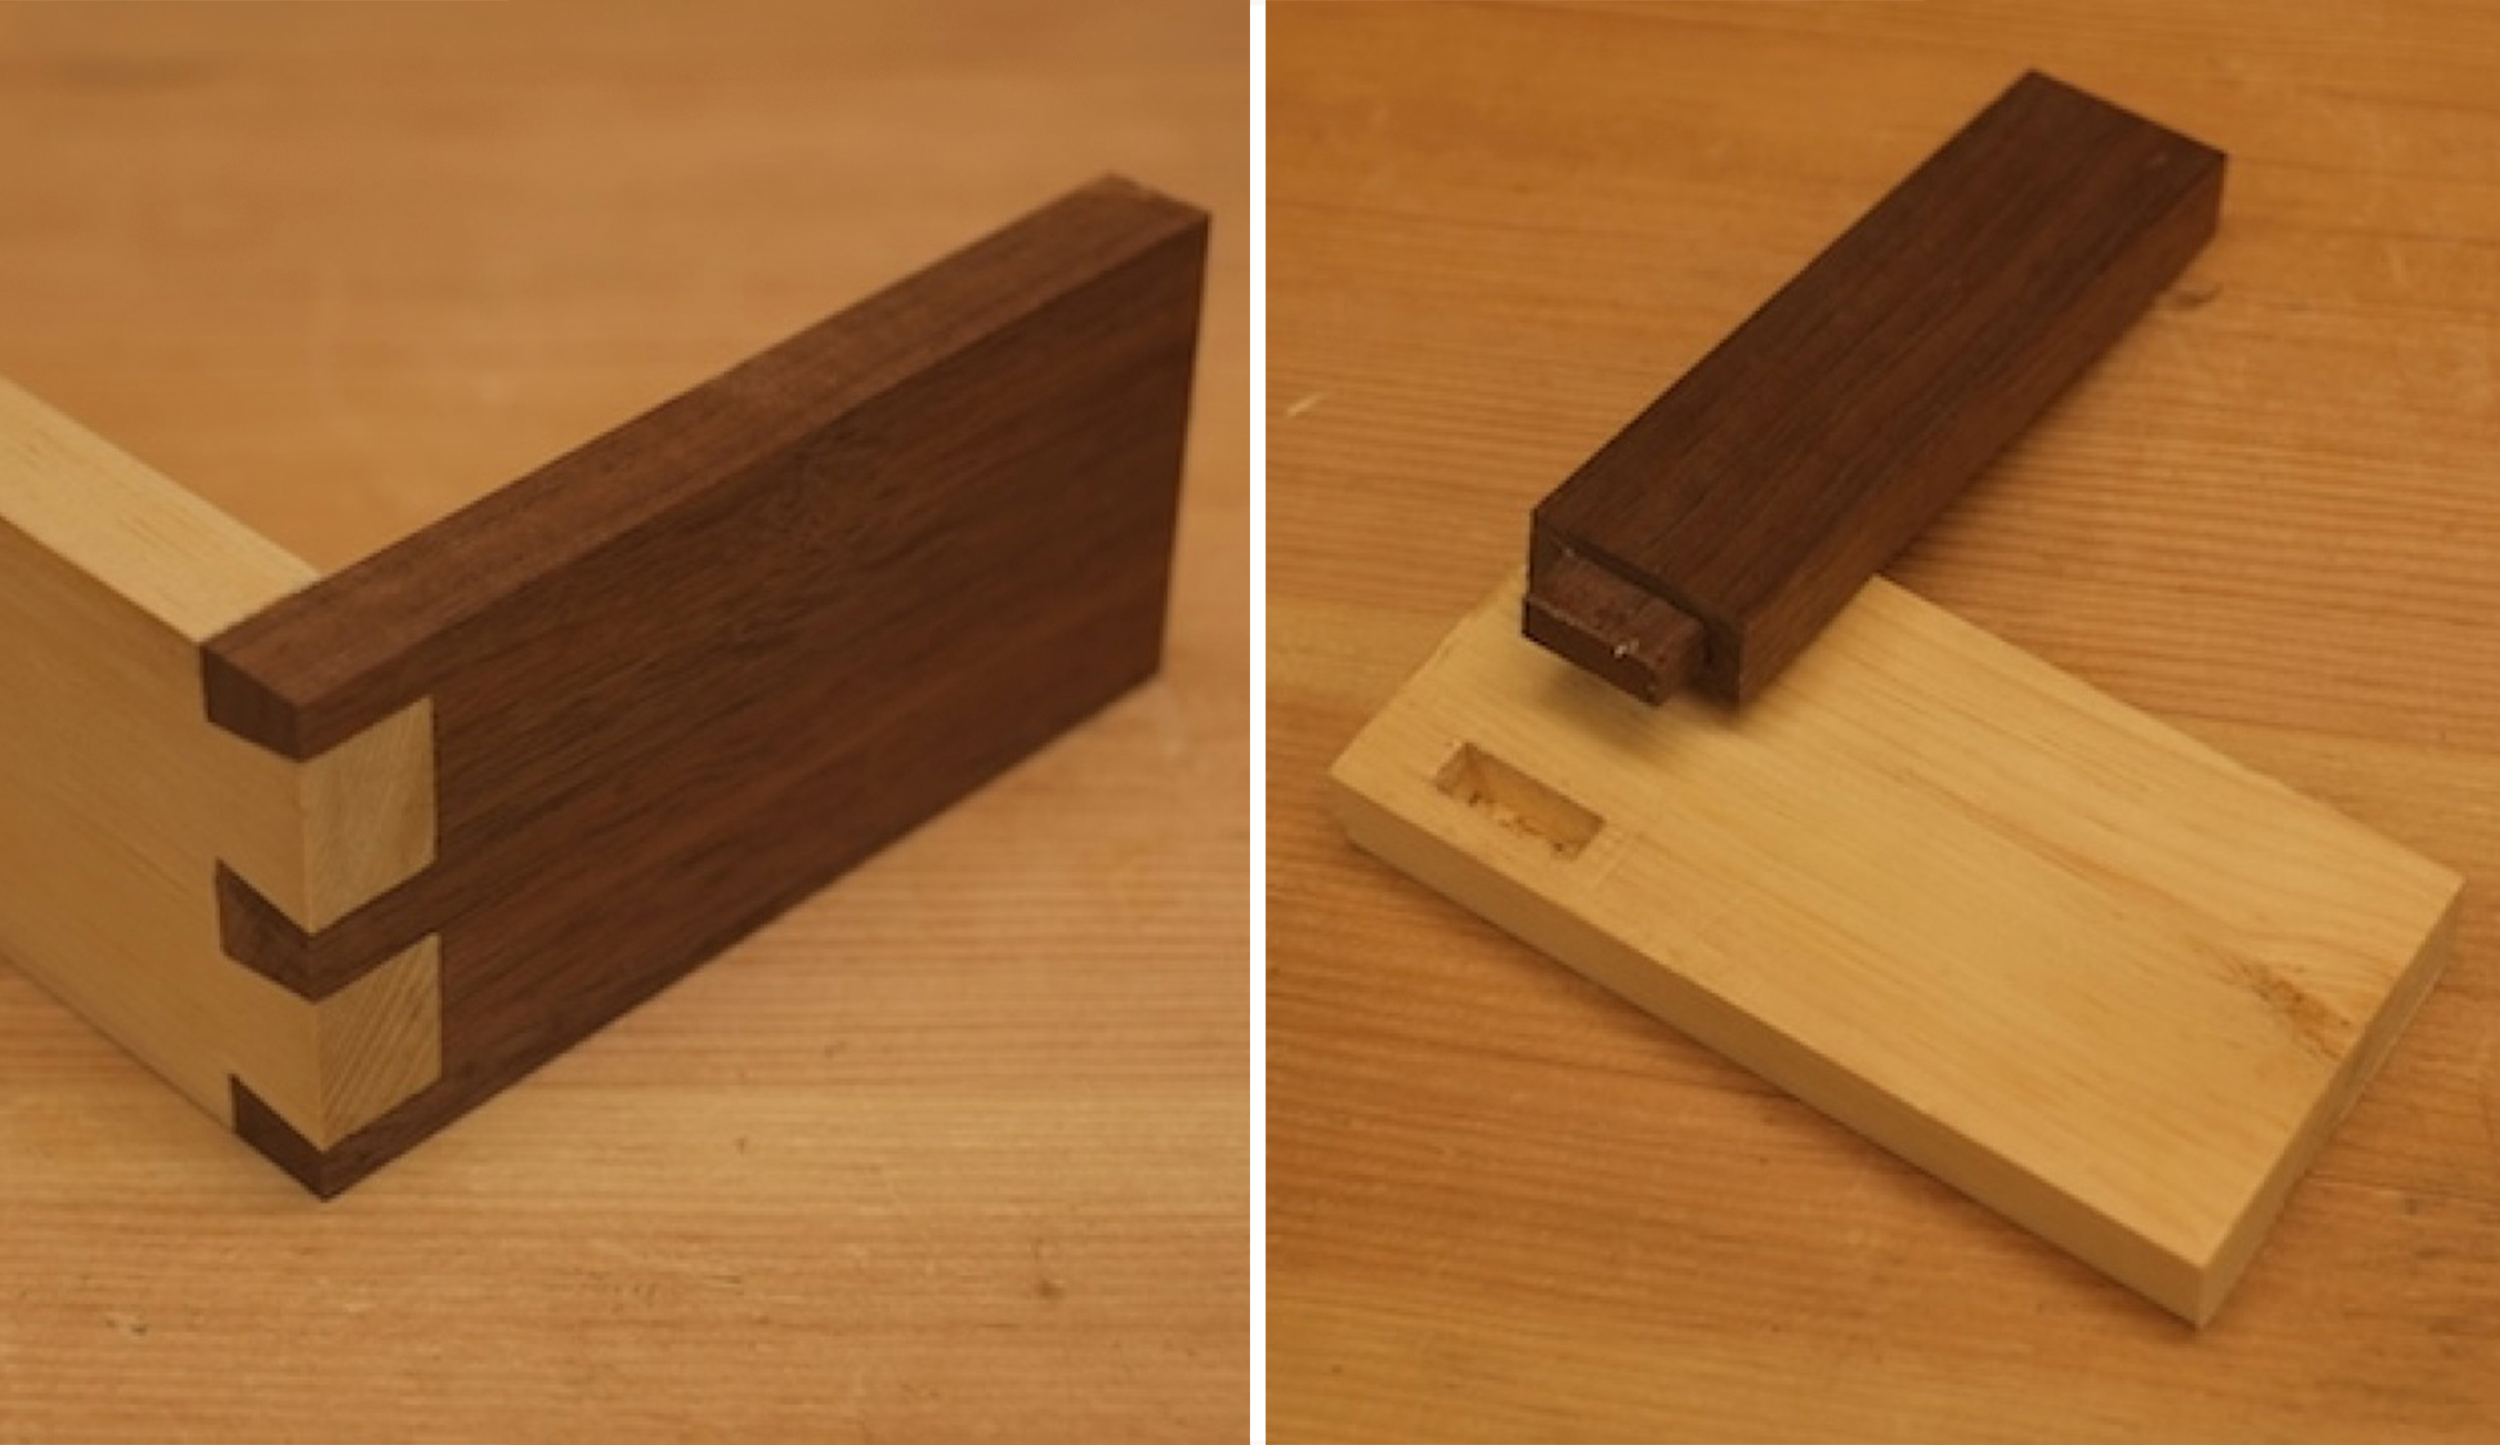 Dovetail and mortise-and-tenon joints